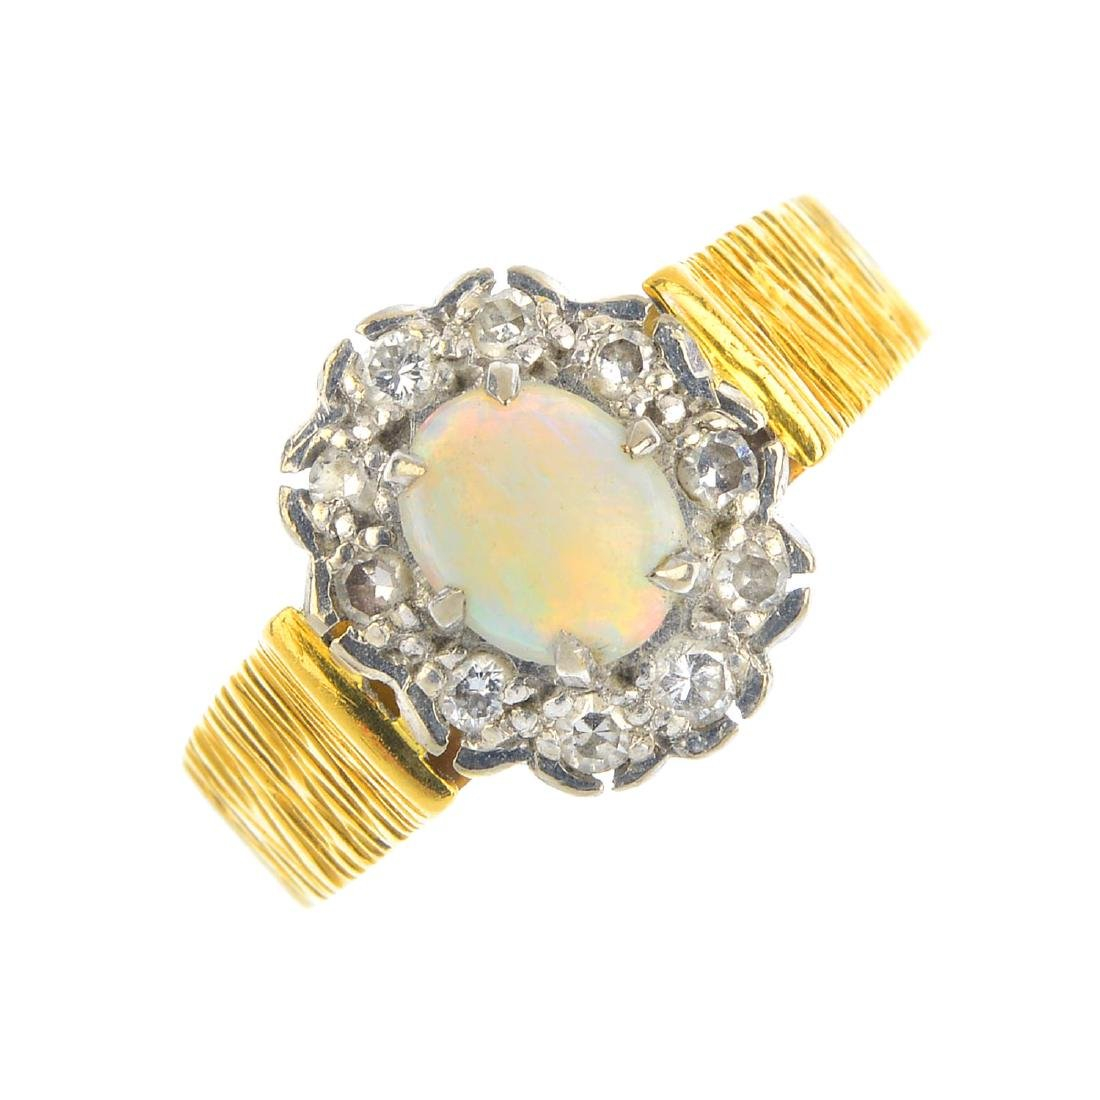 An 18ct gold opal and diamond cluster ring. The oval